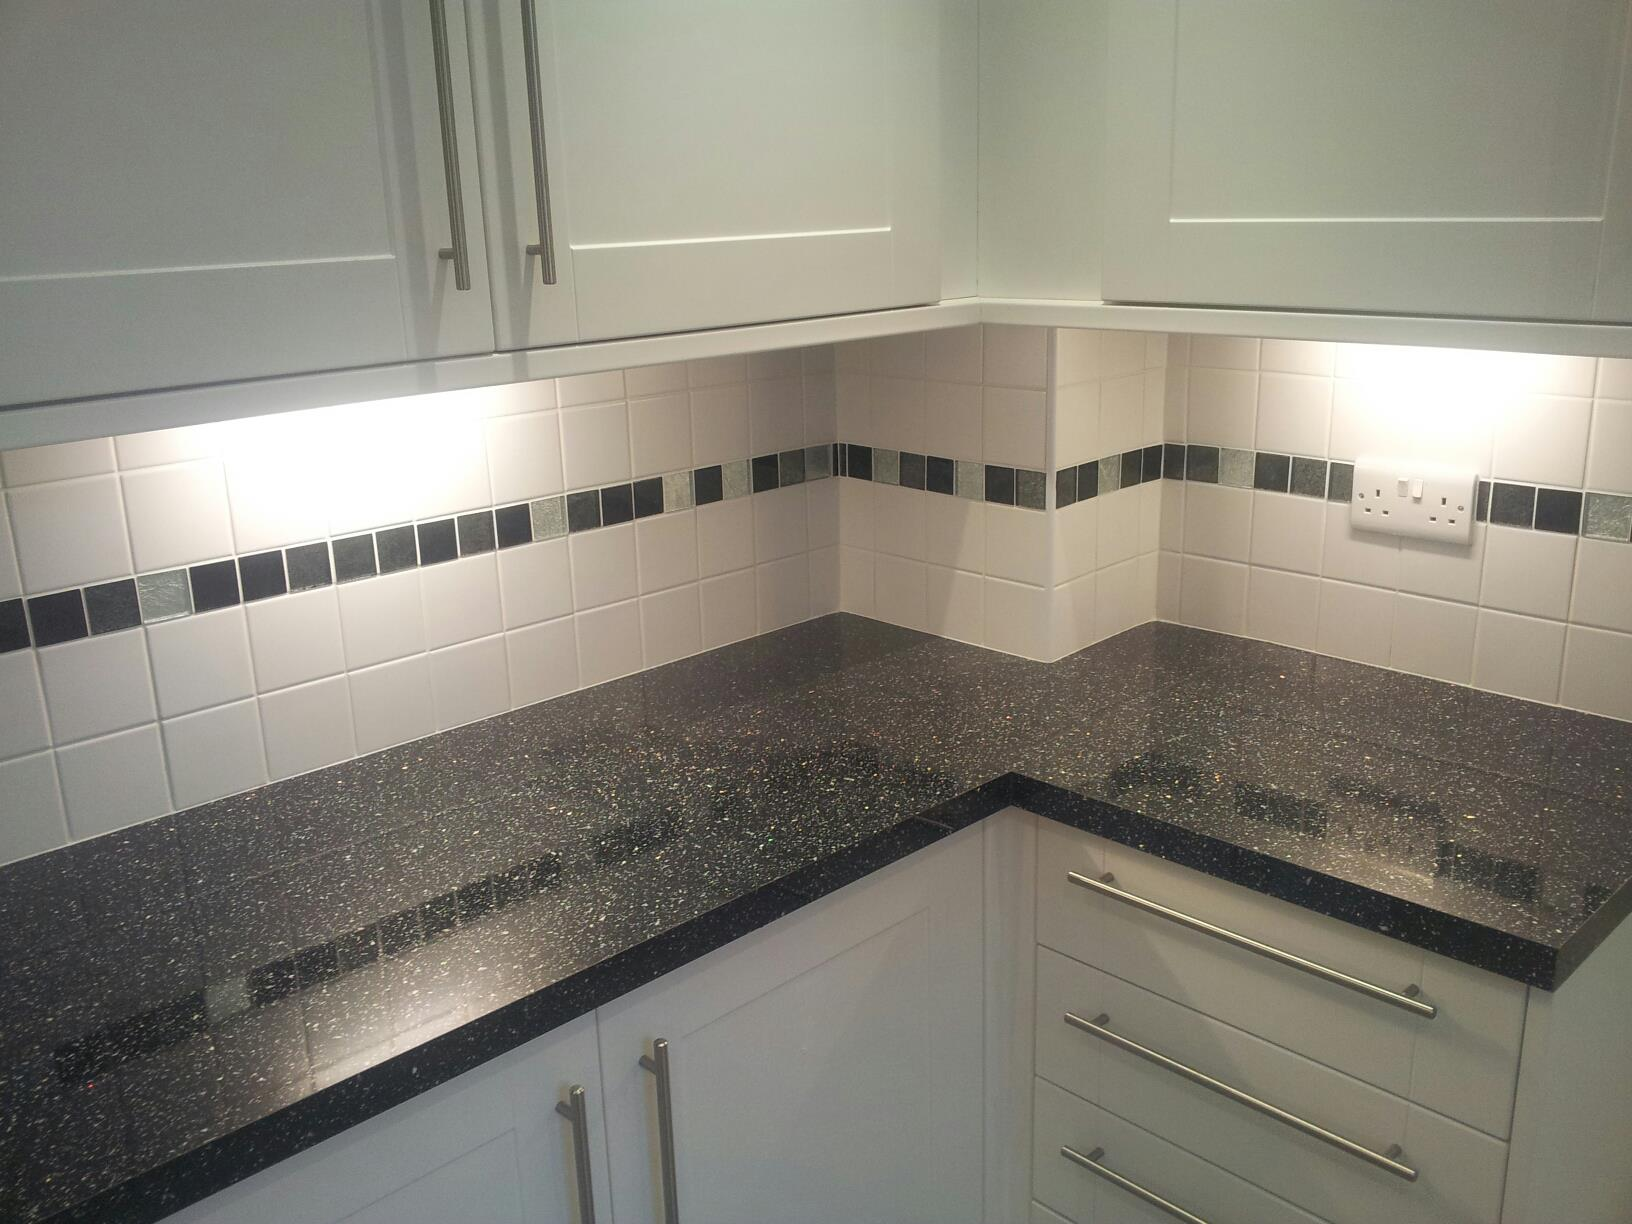 Picture Tiles For Kitchen Tiling Gallery All Of Our Tiling Work